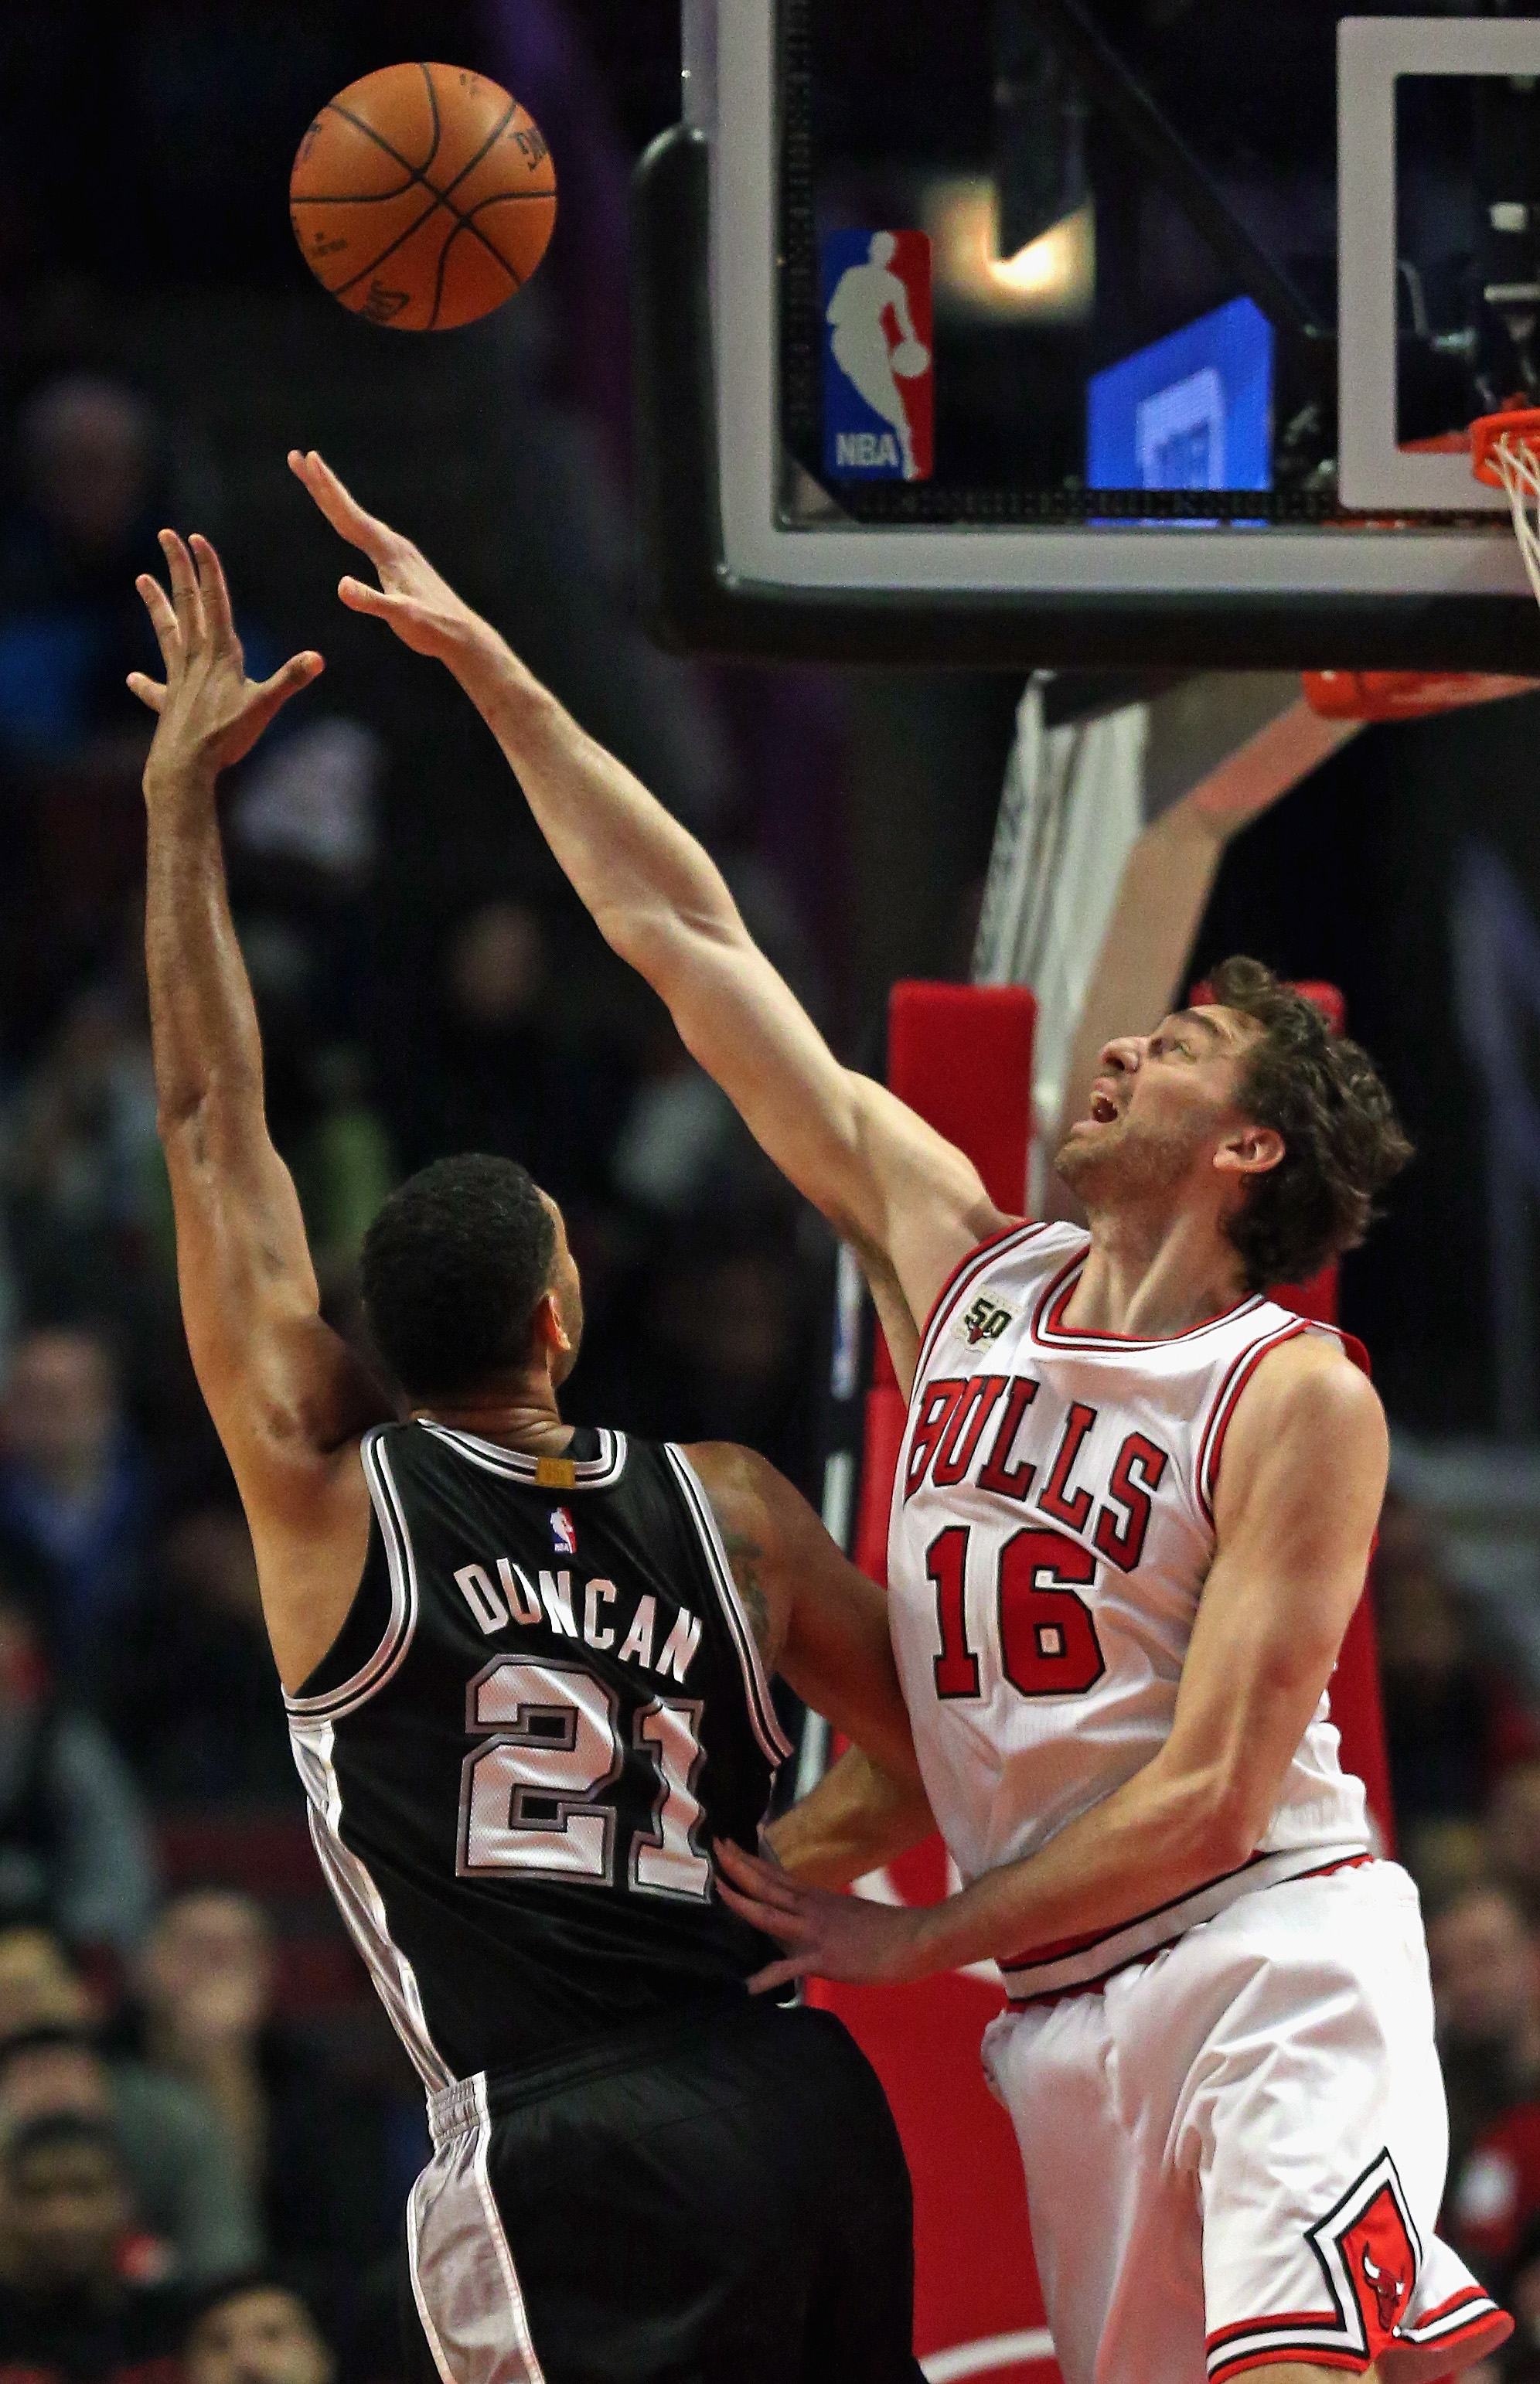 CHICAGO, IL - NOVEMBER 30: Pau Gasol #16 of the Chicago Bulls blocks a shot by Tim Duncan #21 of the San Antonio Spurs at the United Center on November 30, 2015 in Chicago, Illinois. Note to User: User expressly acknowledges and agrees that, by downloadin